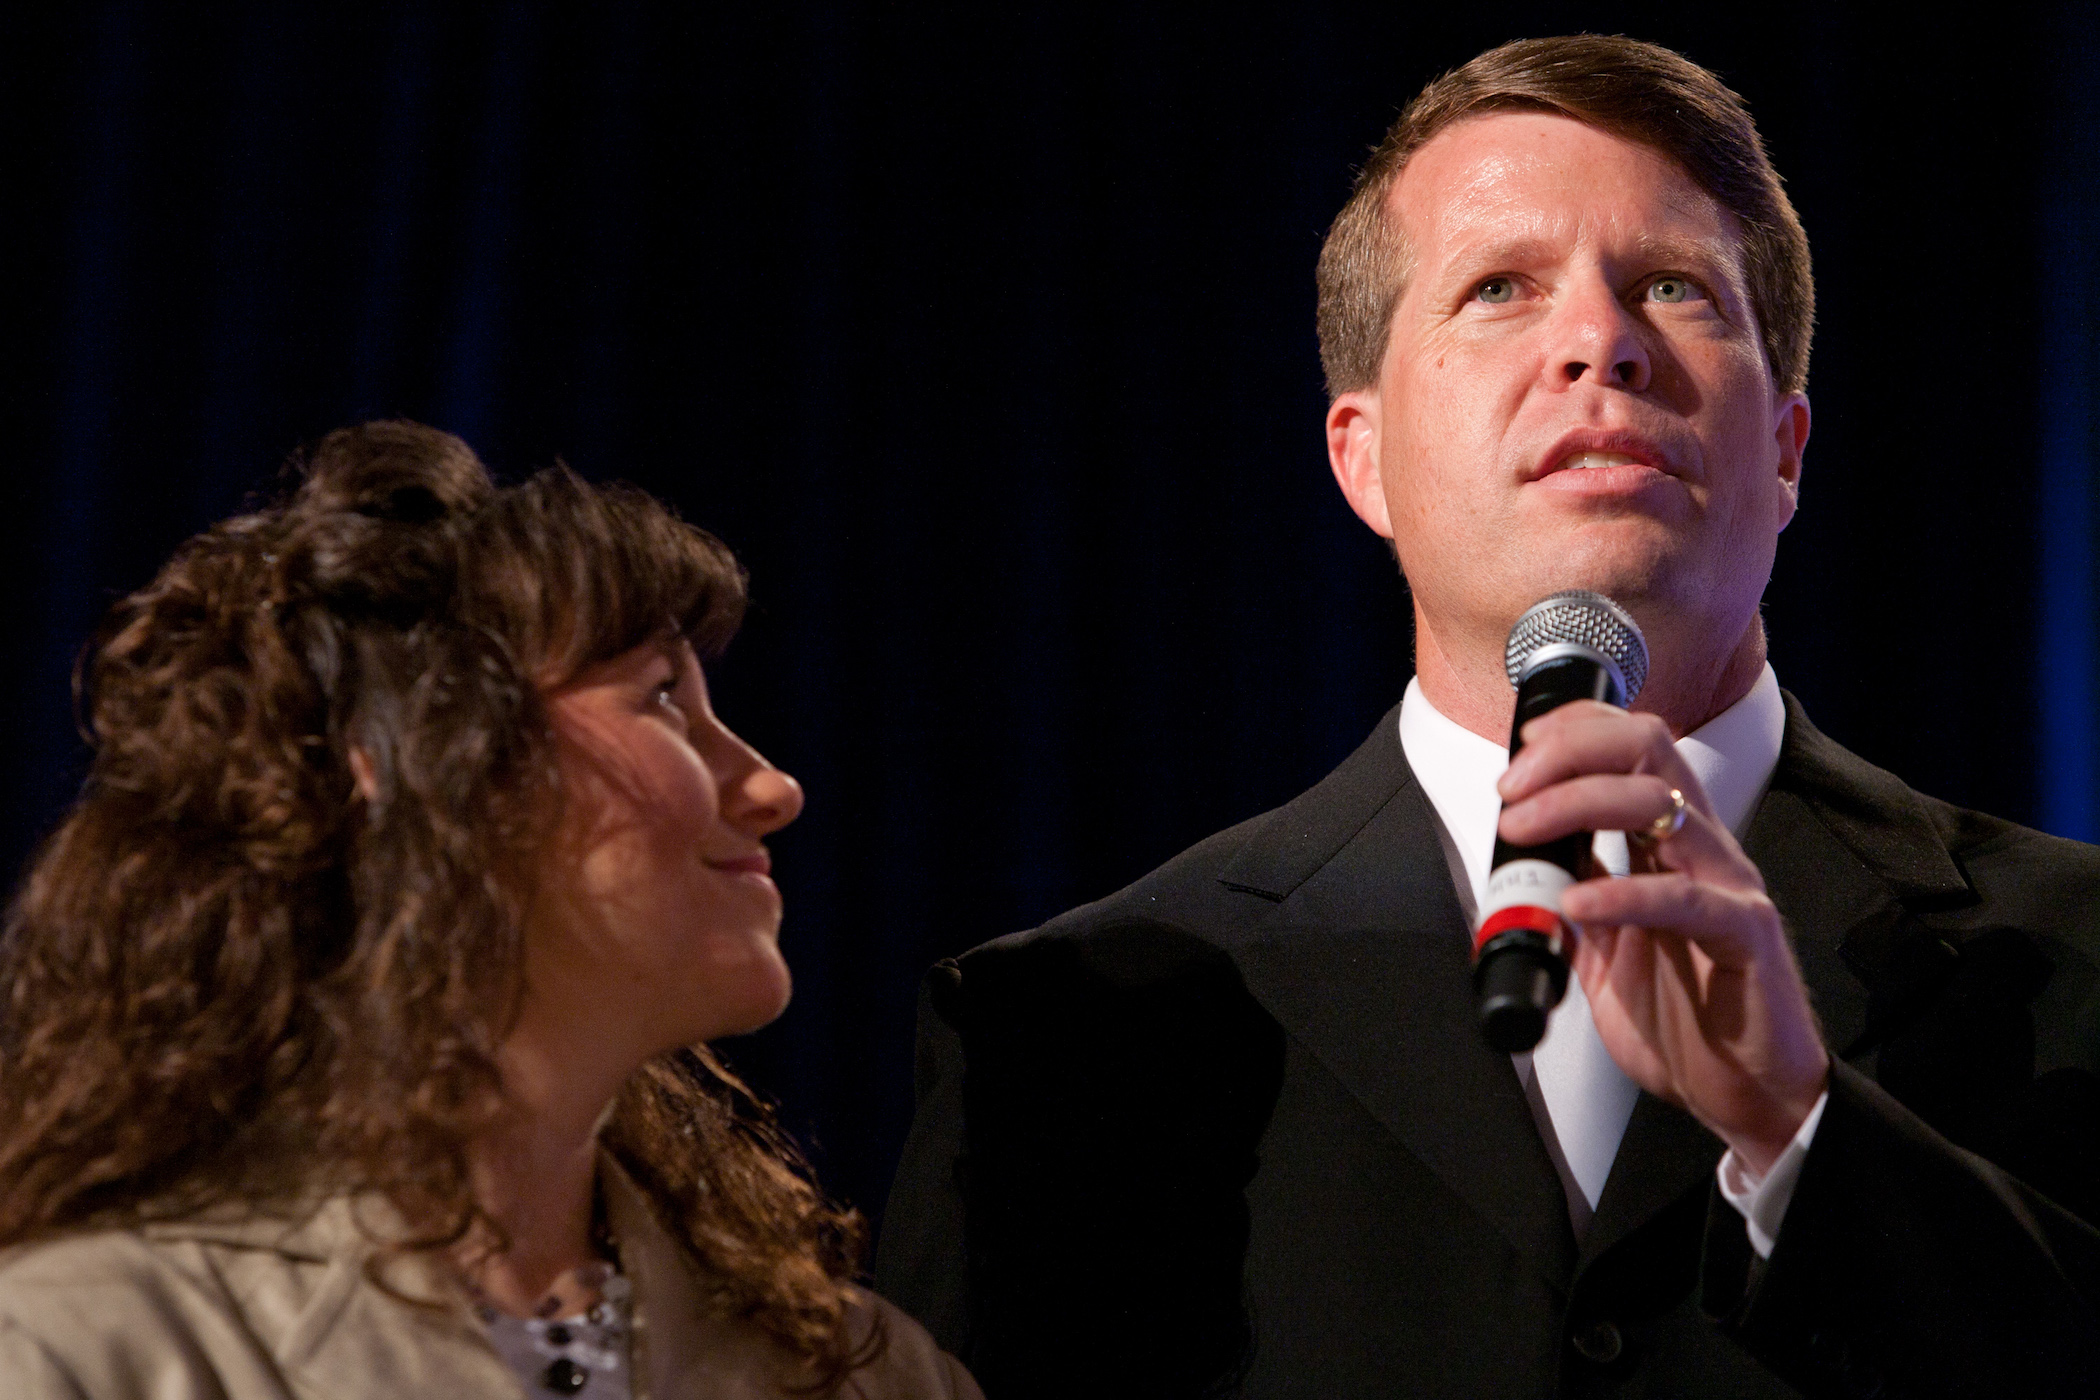 Michelle and Jim Bob Duggar from the Duggar family of TLC's 'Counting On' speaking at an event against a black background